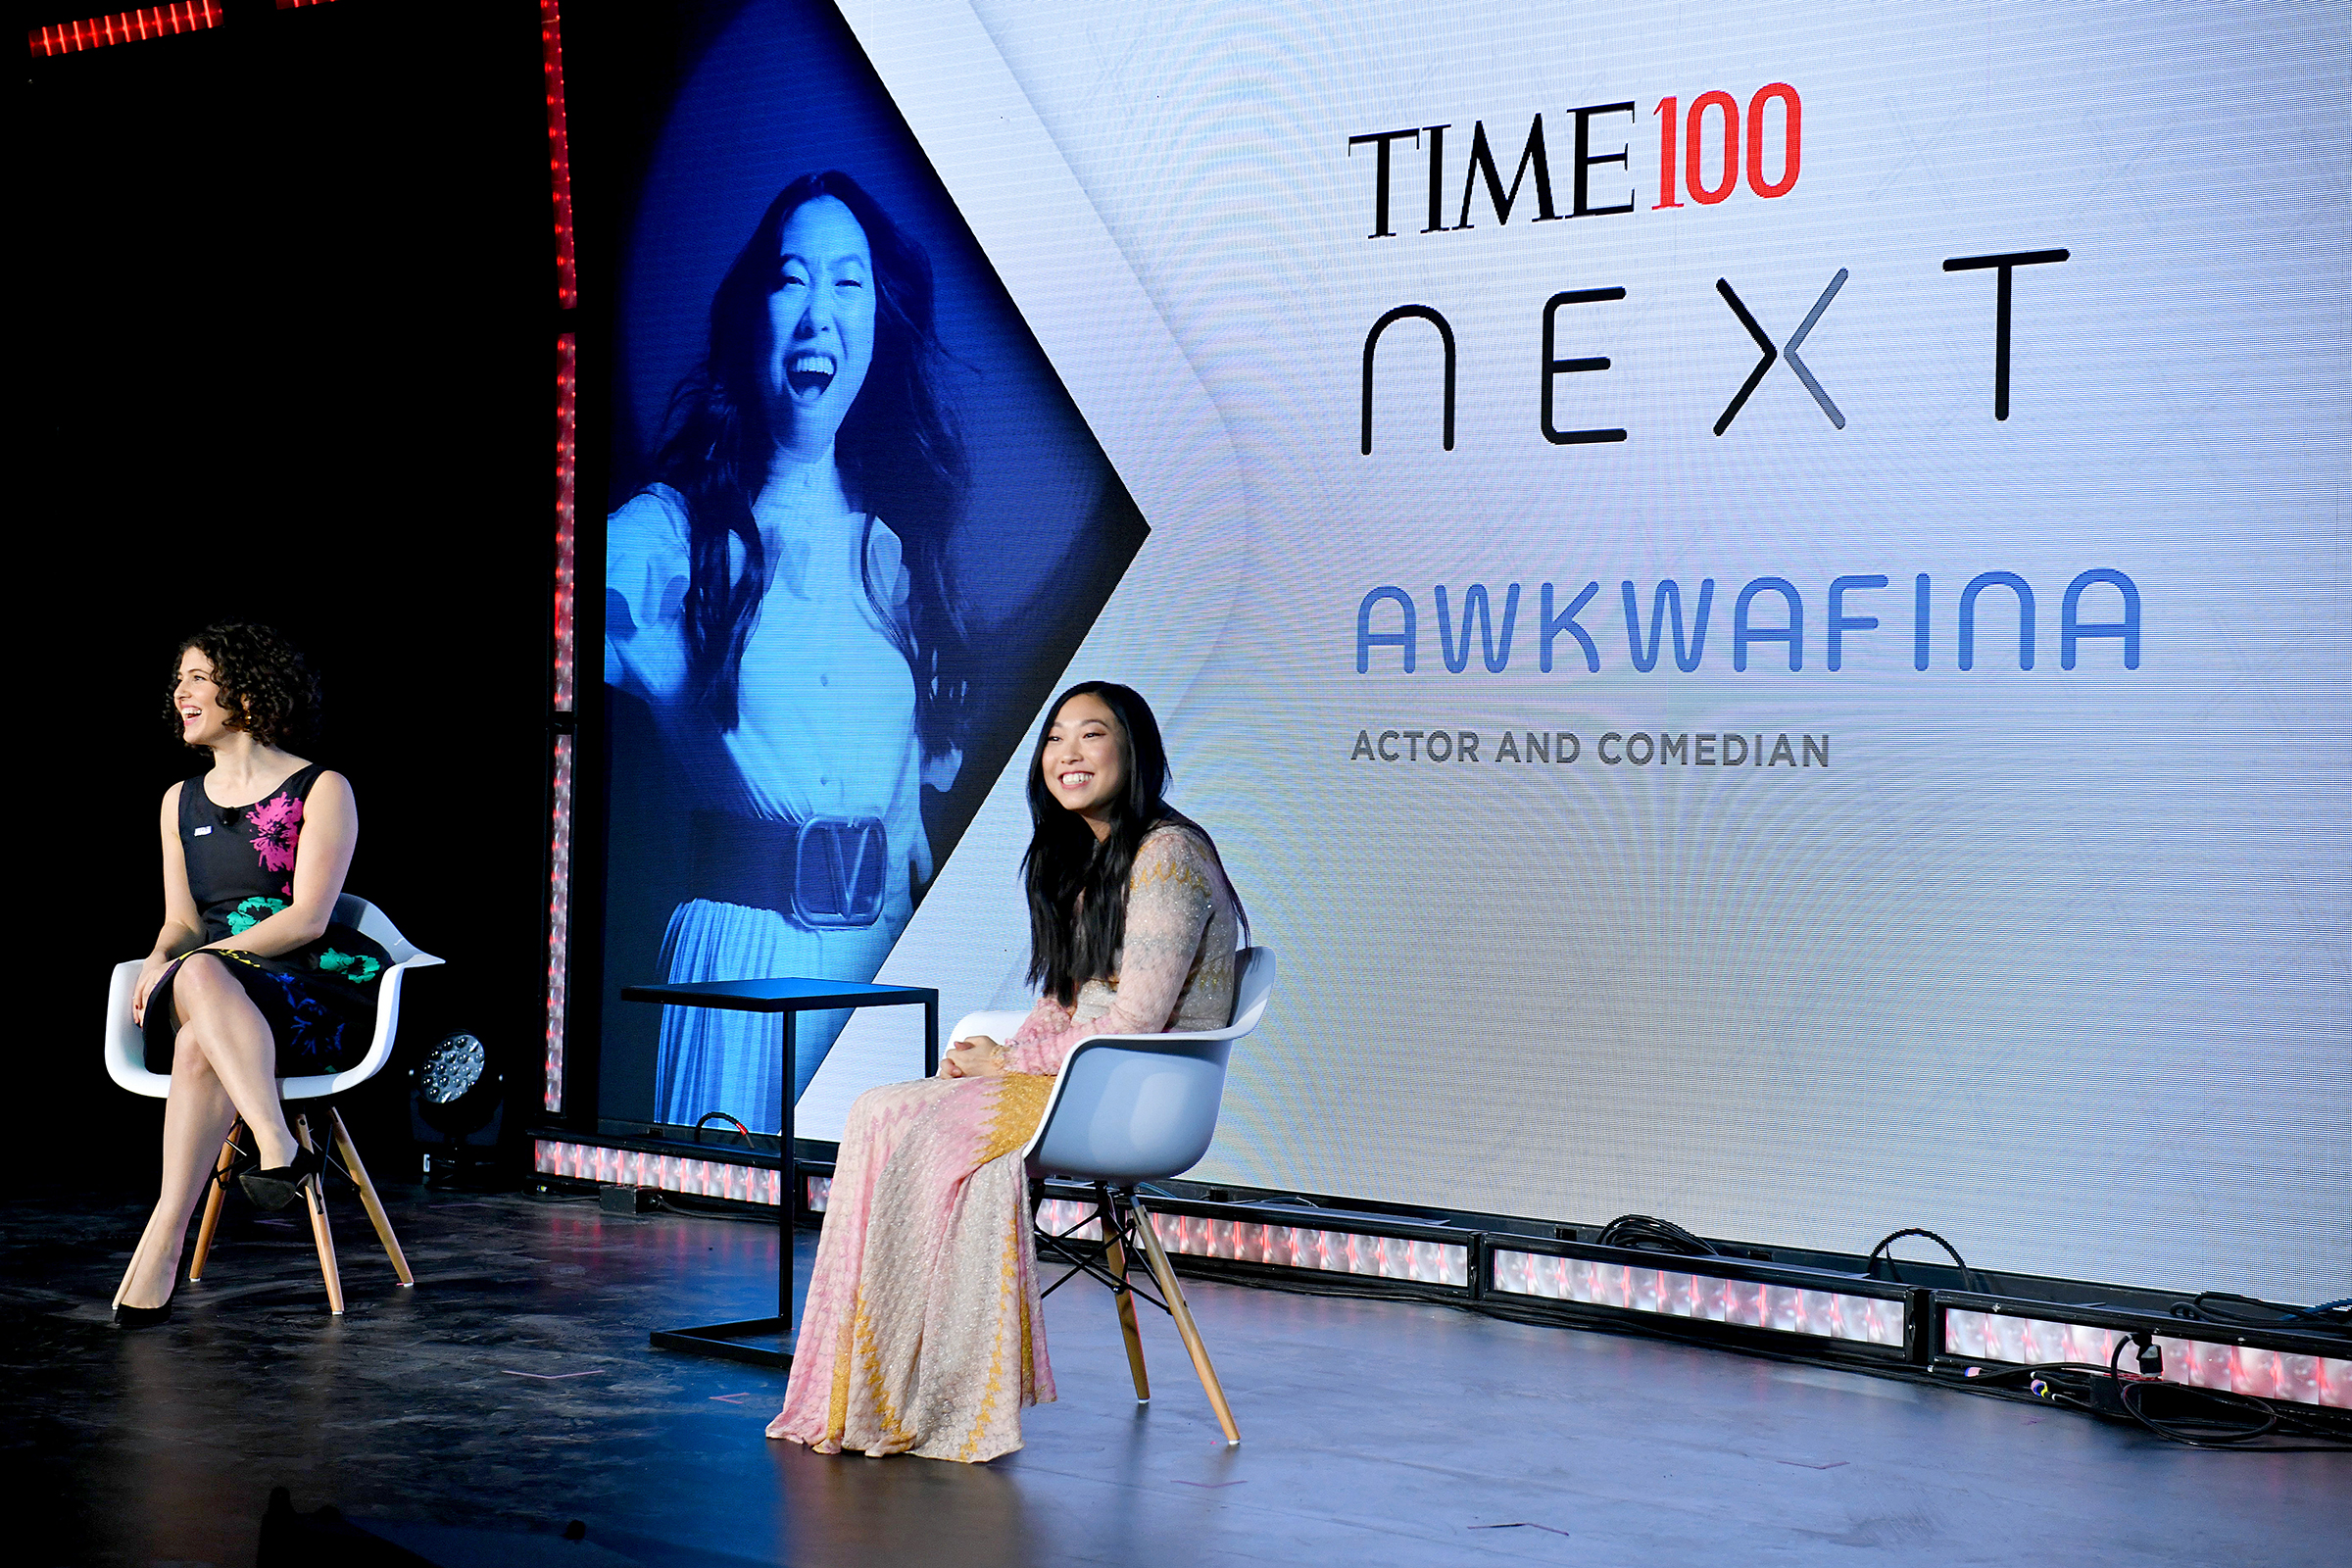 Charlotte Alter and Awkwafina speak onstage during TIME 100 Next 2019 at Pier 17 in New York on Nov. 14, 2019.